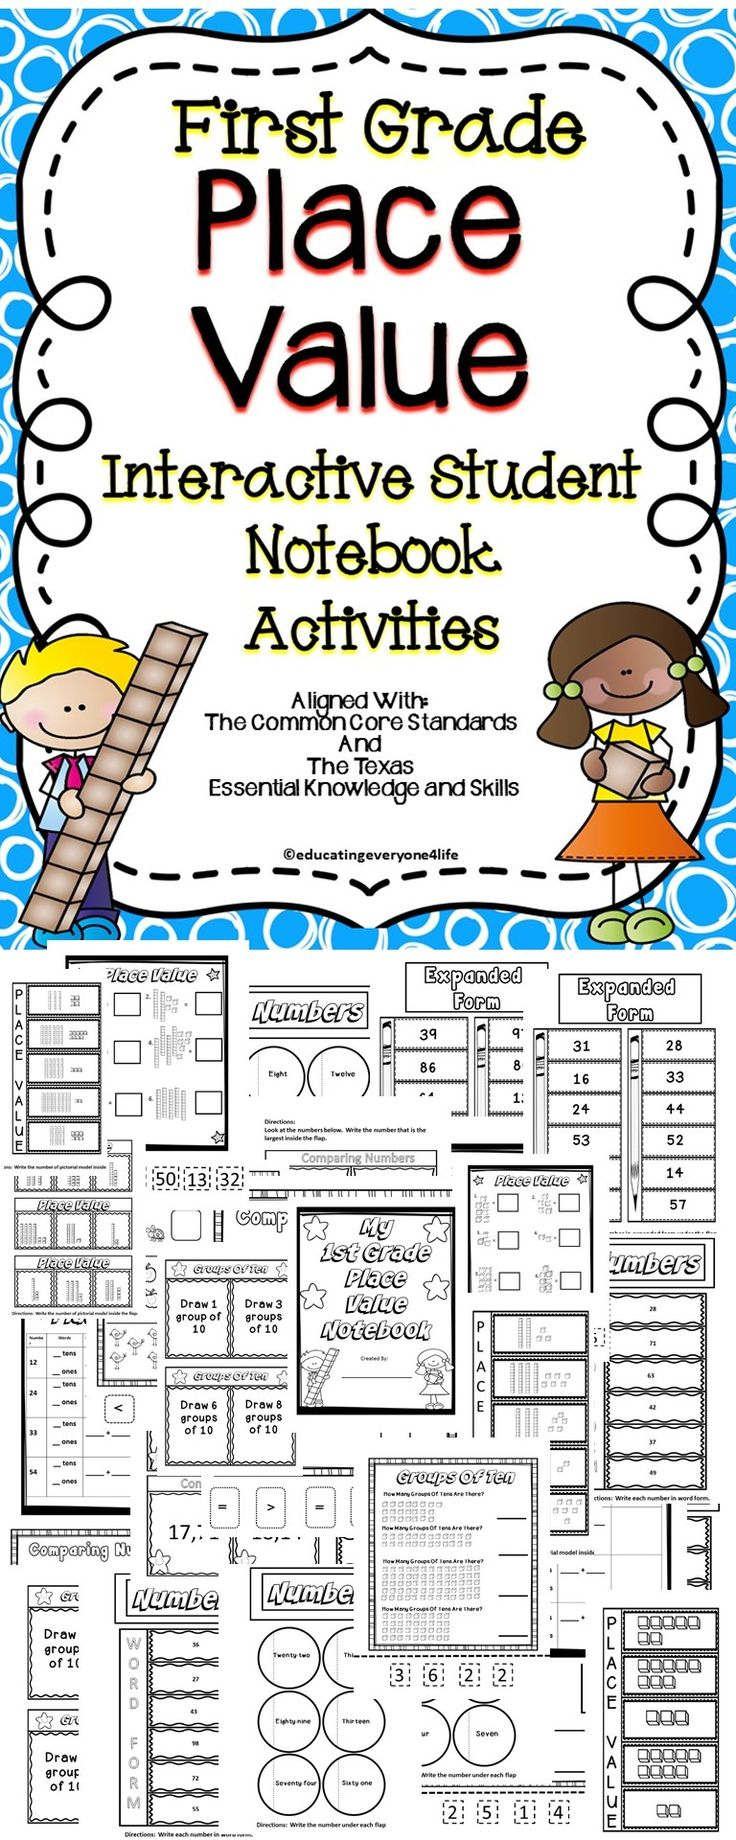 Place Value Interactive Student Notebook For First Grade - This is a fun place value resource for first graders. Students will take pride and ownership while creating their place value interactive notebook! This Interactive Notebook is a great way to get students excited while learning all about place value! #math